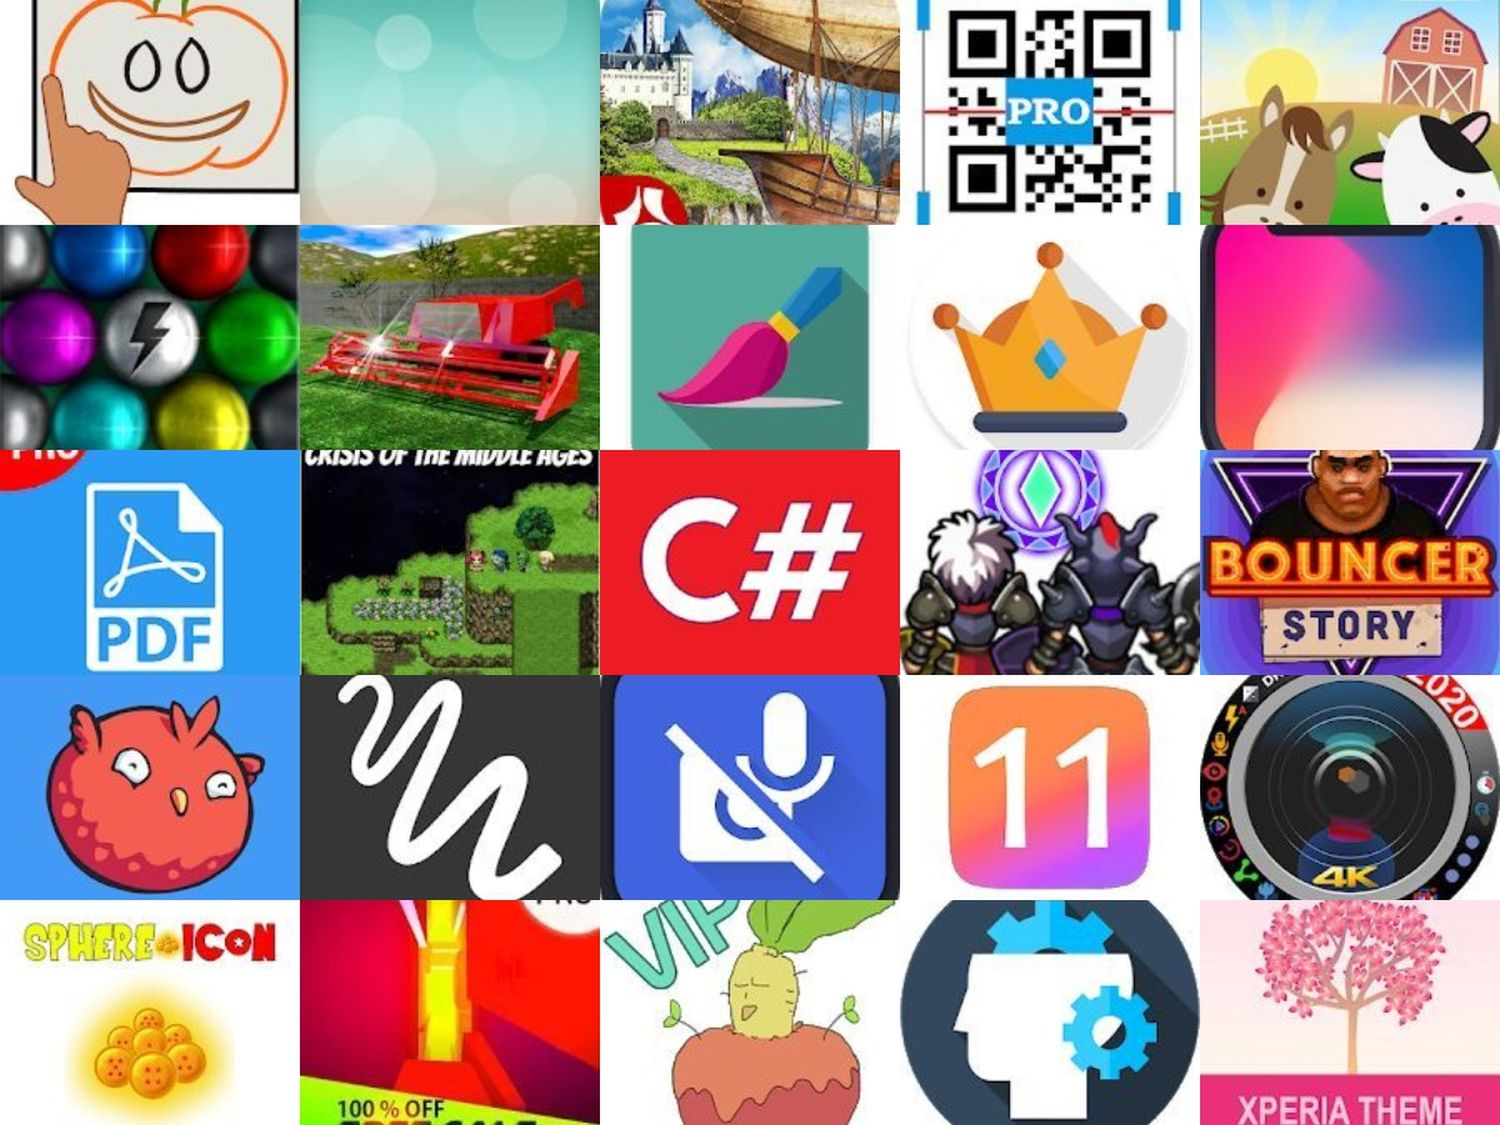 apps 06.02.2020